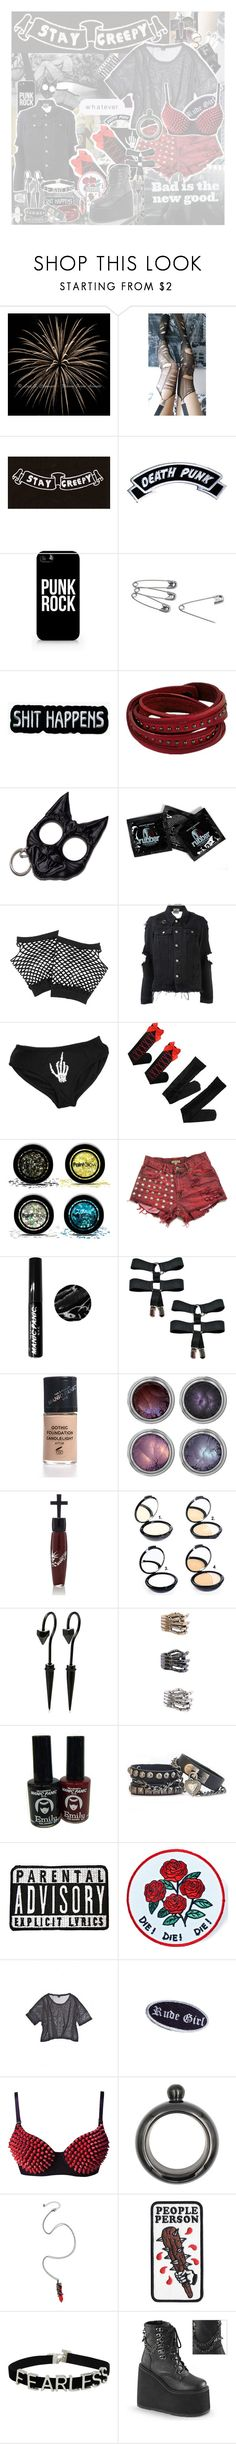 """O d e T o P u n k R o c k"" by binkmoi ❤ liked on Polyvore featuring ELSE, Kenzo, Kreepsville 666, Samsung, Forever 21, UNIF, Creep Street, PaintGlow, Manic Panic NYC and Concrete Minerals"